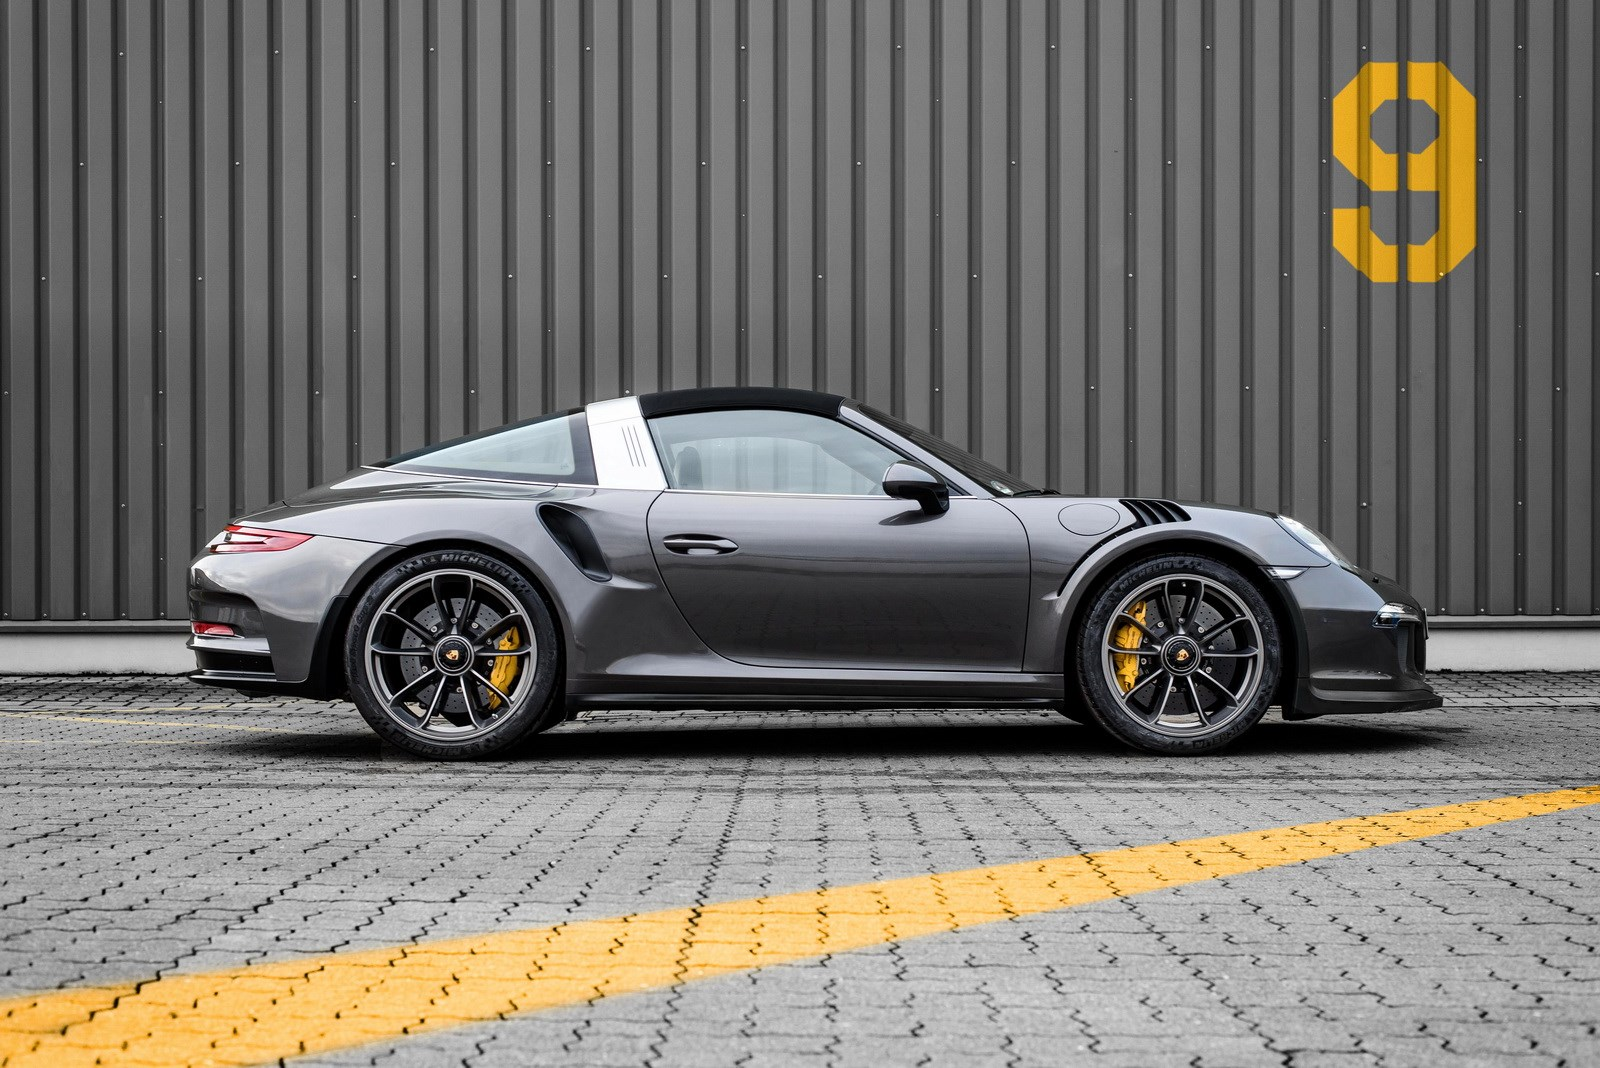 Why not both perfect porsche 991 targagt3 rs mashup revealed this porsche left the factory as a 9912 targa 4 gts offering 331kw of turbocharged power an open air driving experience and the comfortable gt ride sciox Image collections